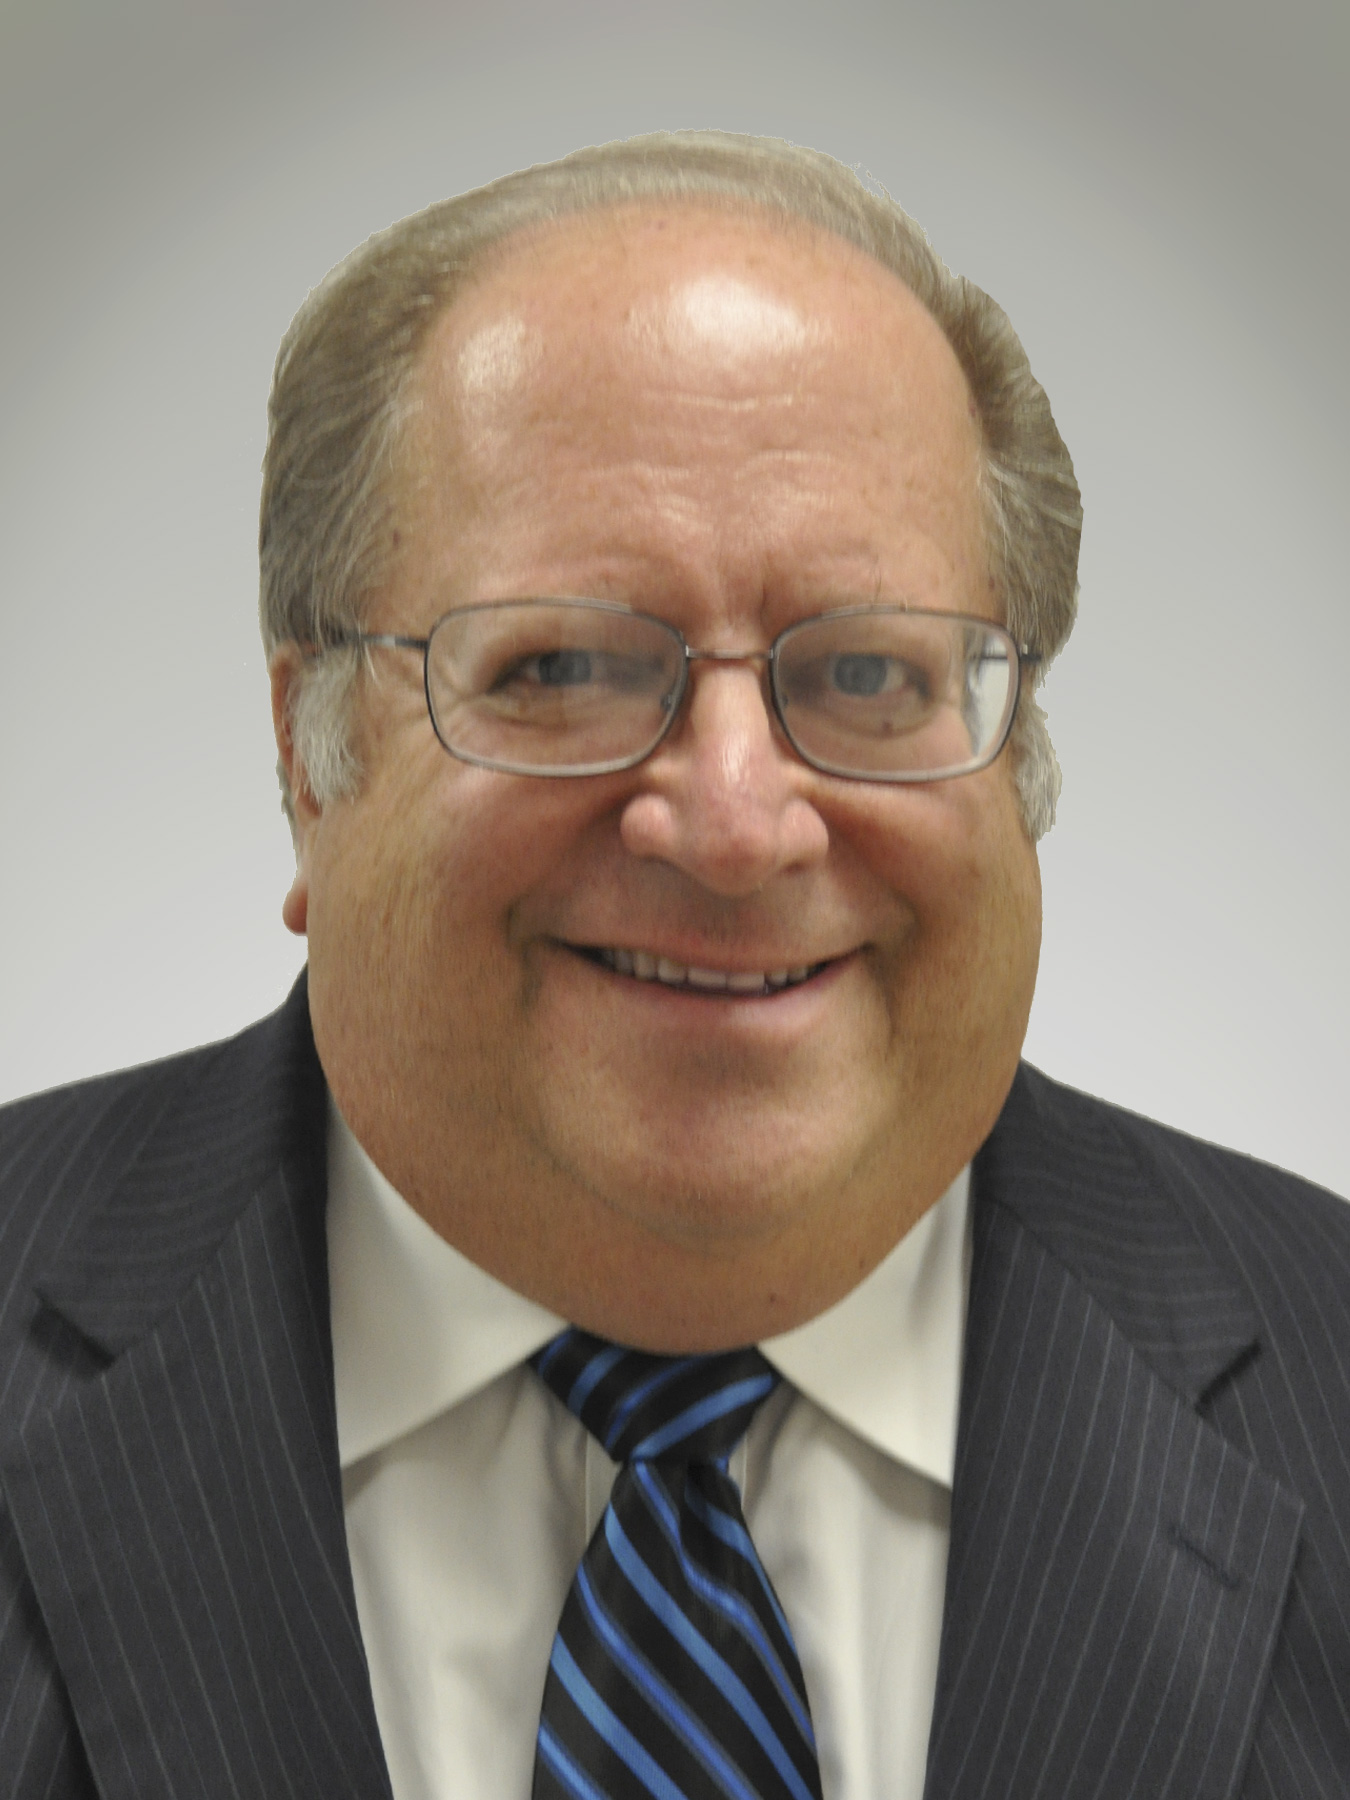 Robert D. Arenstein